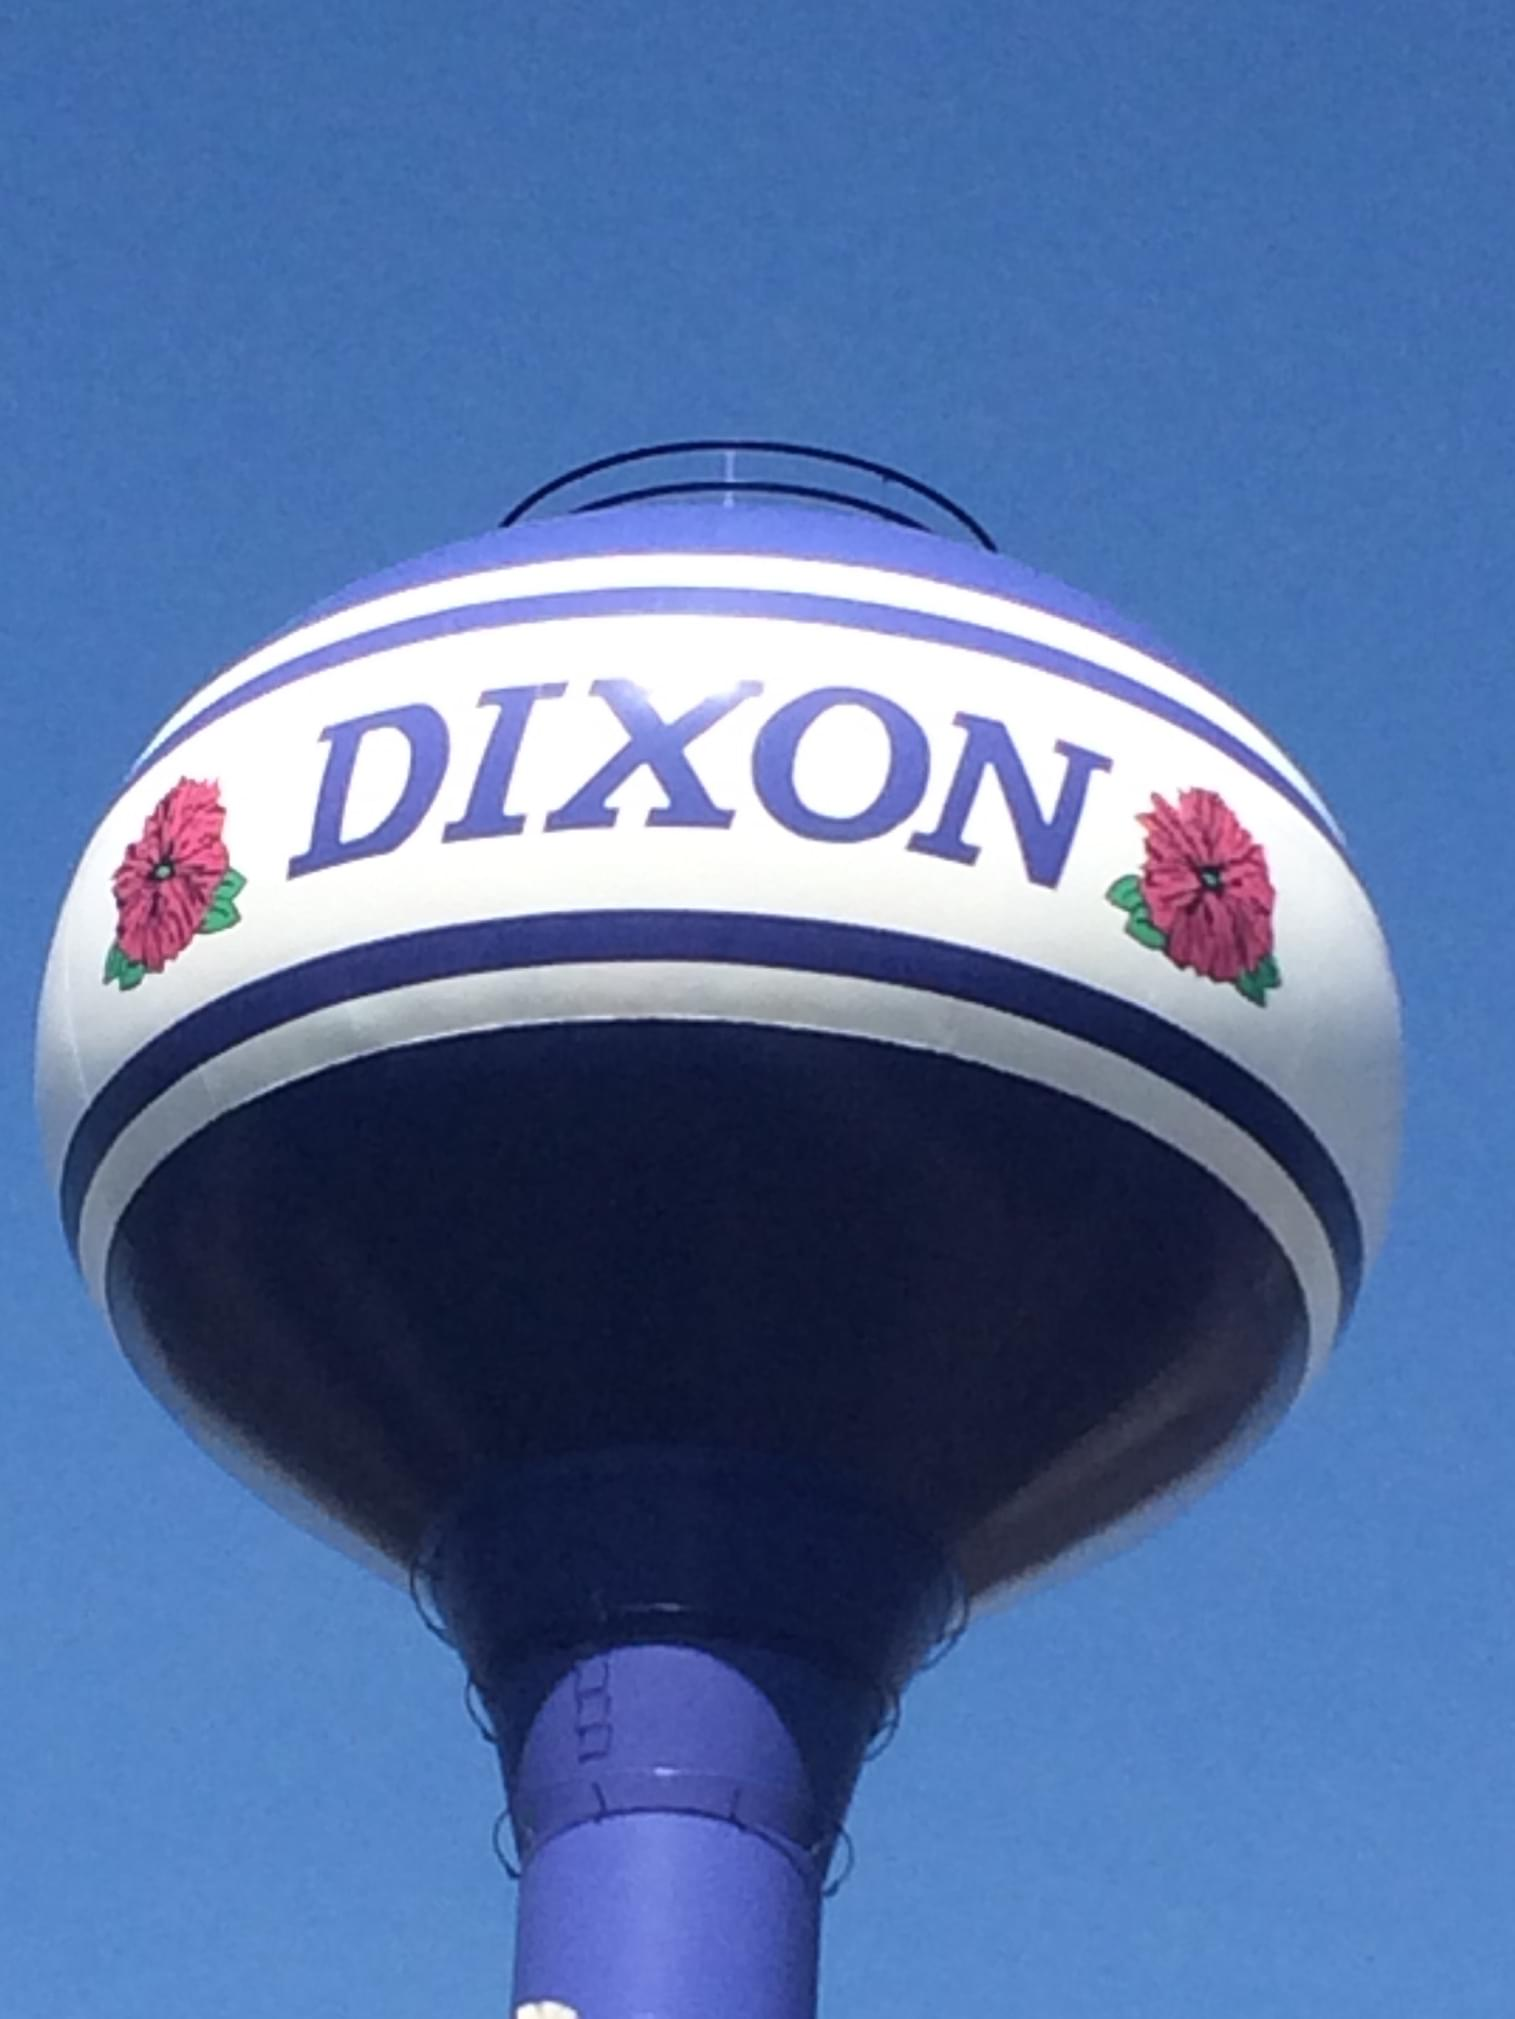 Dixon's Water Line Maintenance Program Already Paying Dividends